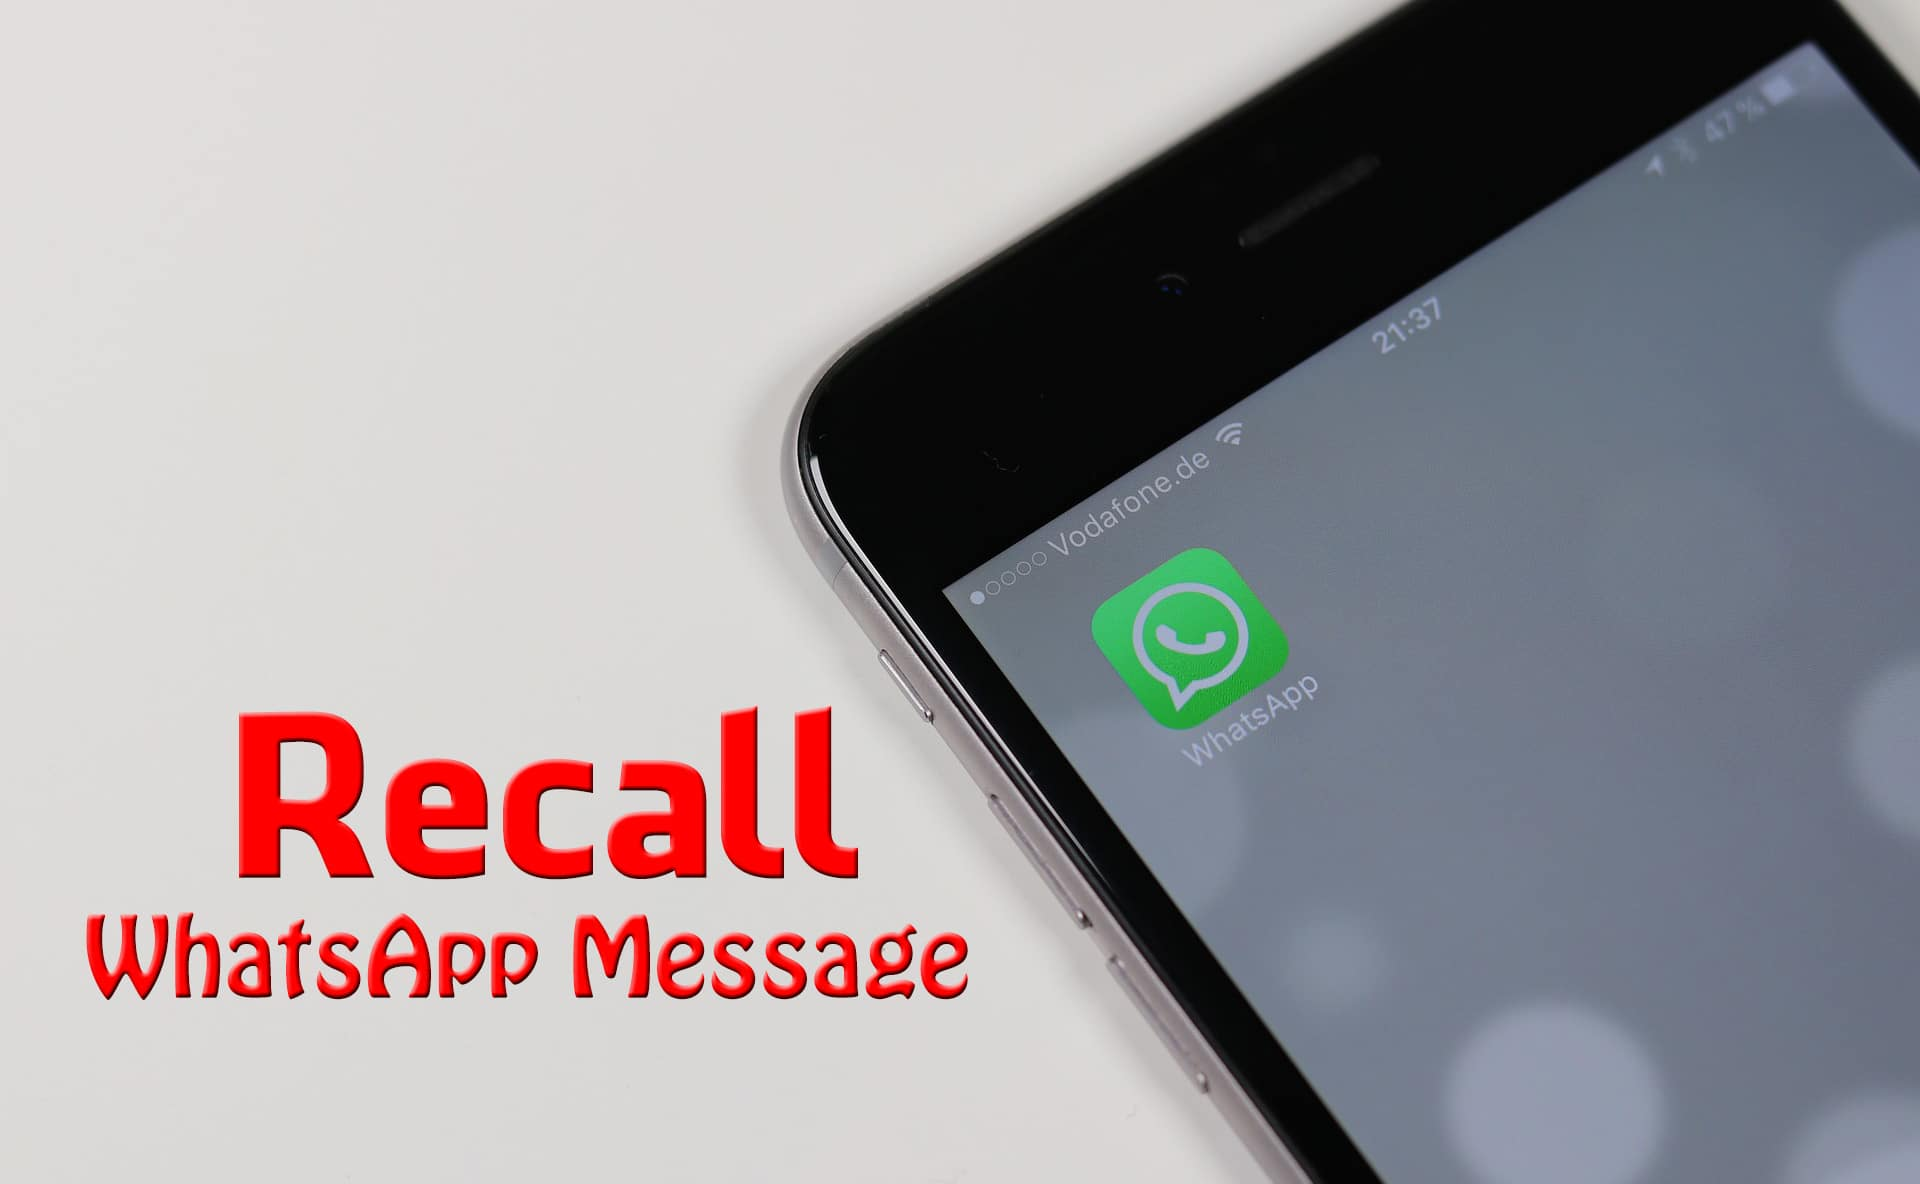 Recall WhatsApp Message